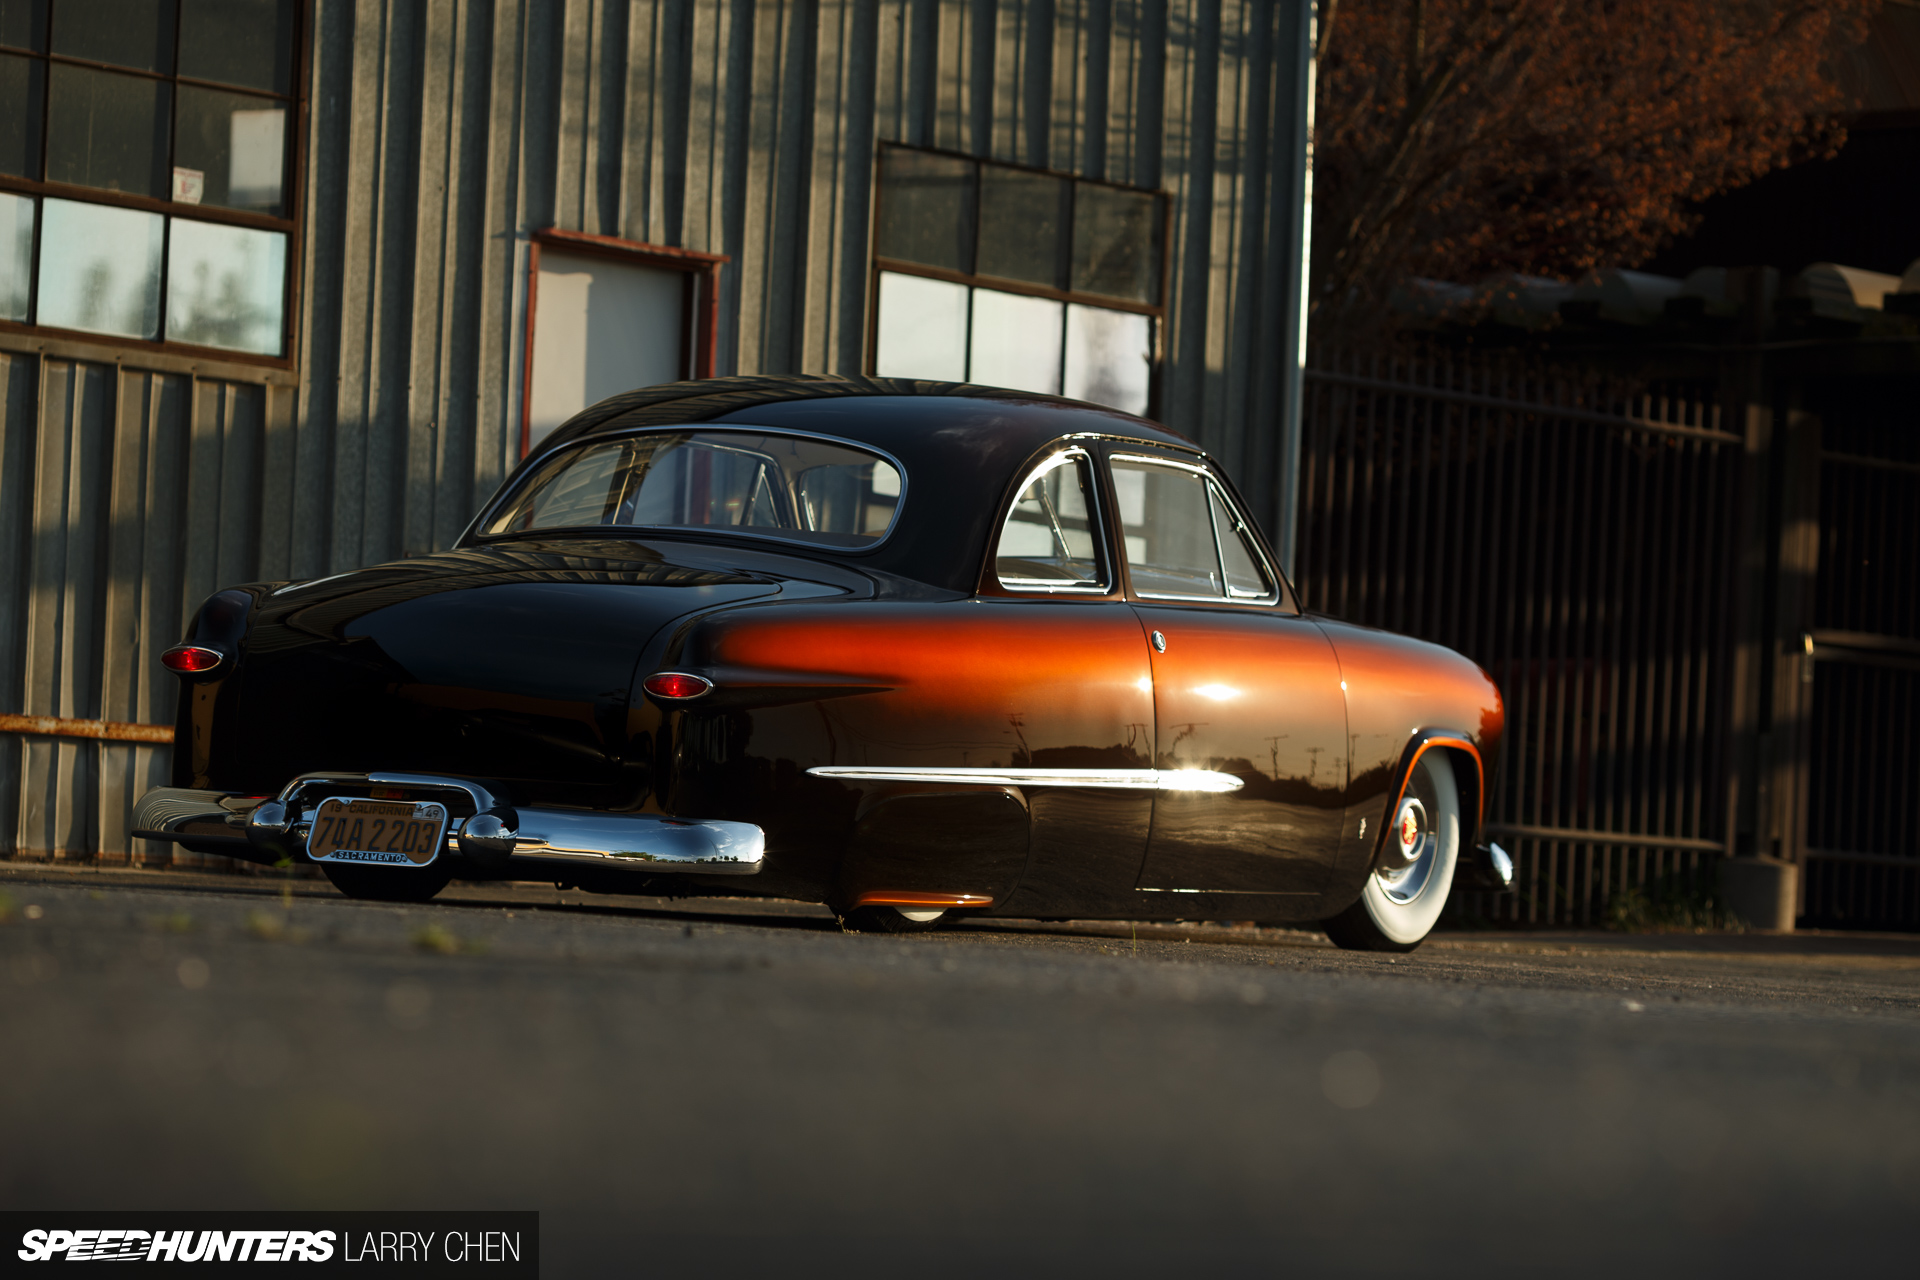 Larry Chen Speedhunters Sweet Brown Ford on 1951 chevy coupe classic car